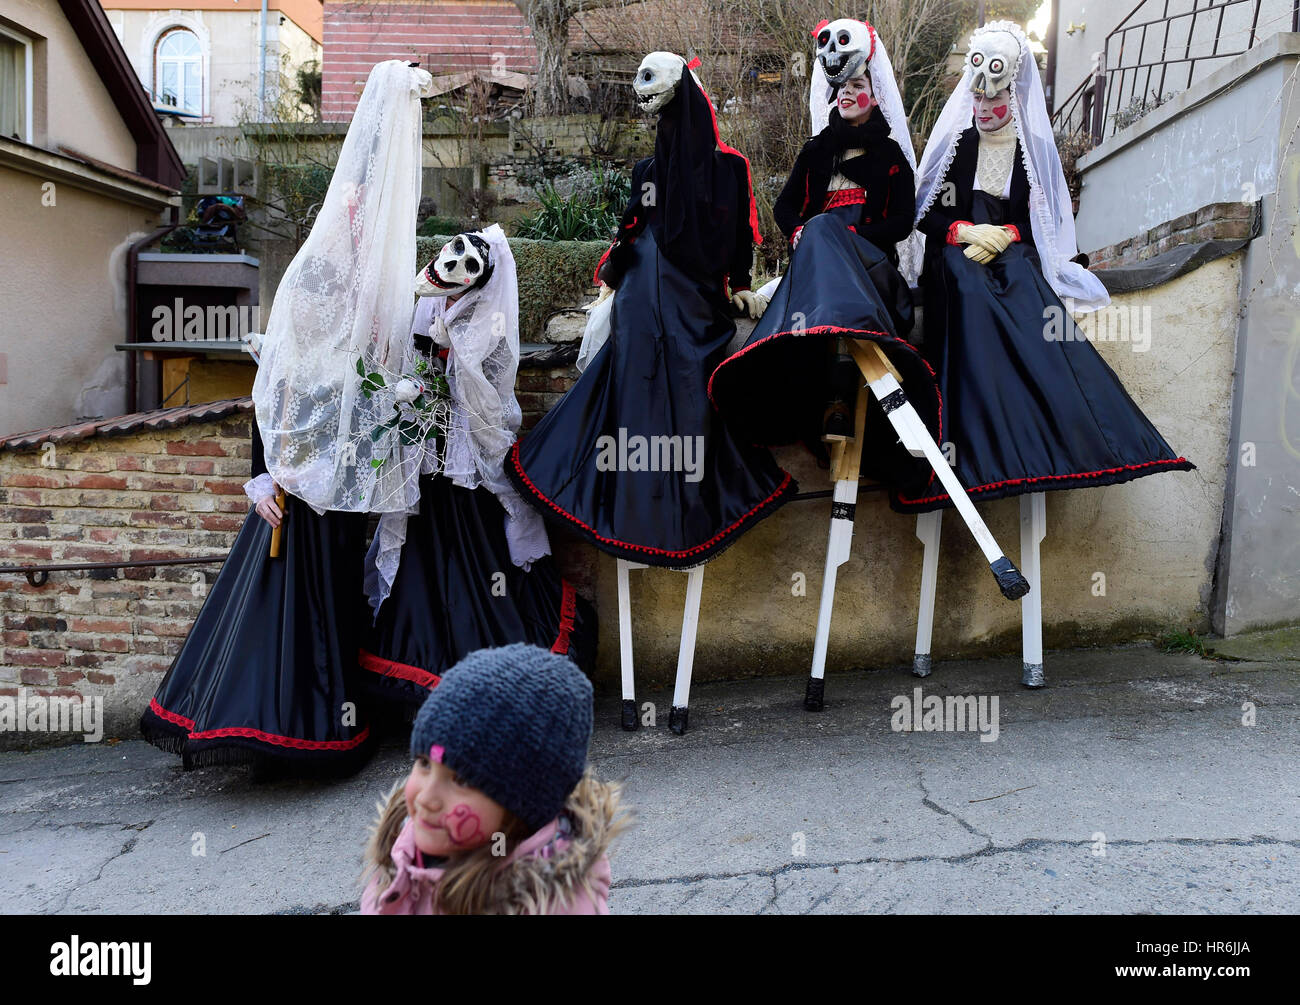 Roztoky, Czech Republic. 25th Feb, 2017. Shrovetide carnivals held all over the country, masks in Roztoky near Prague, - Stock Image